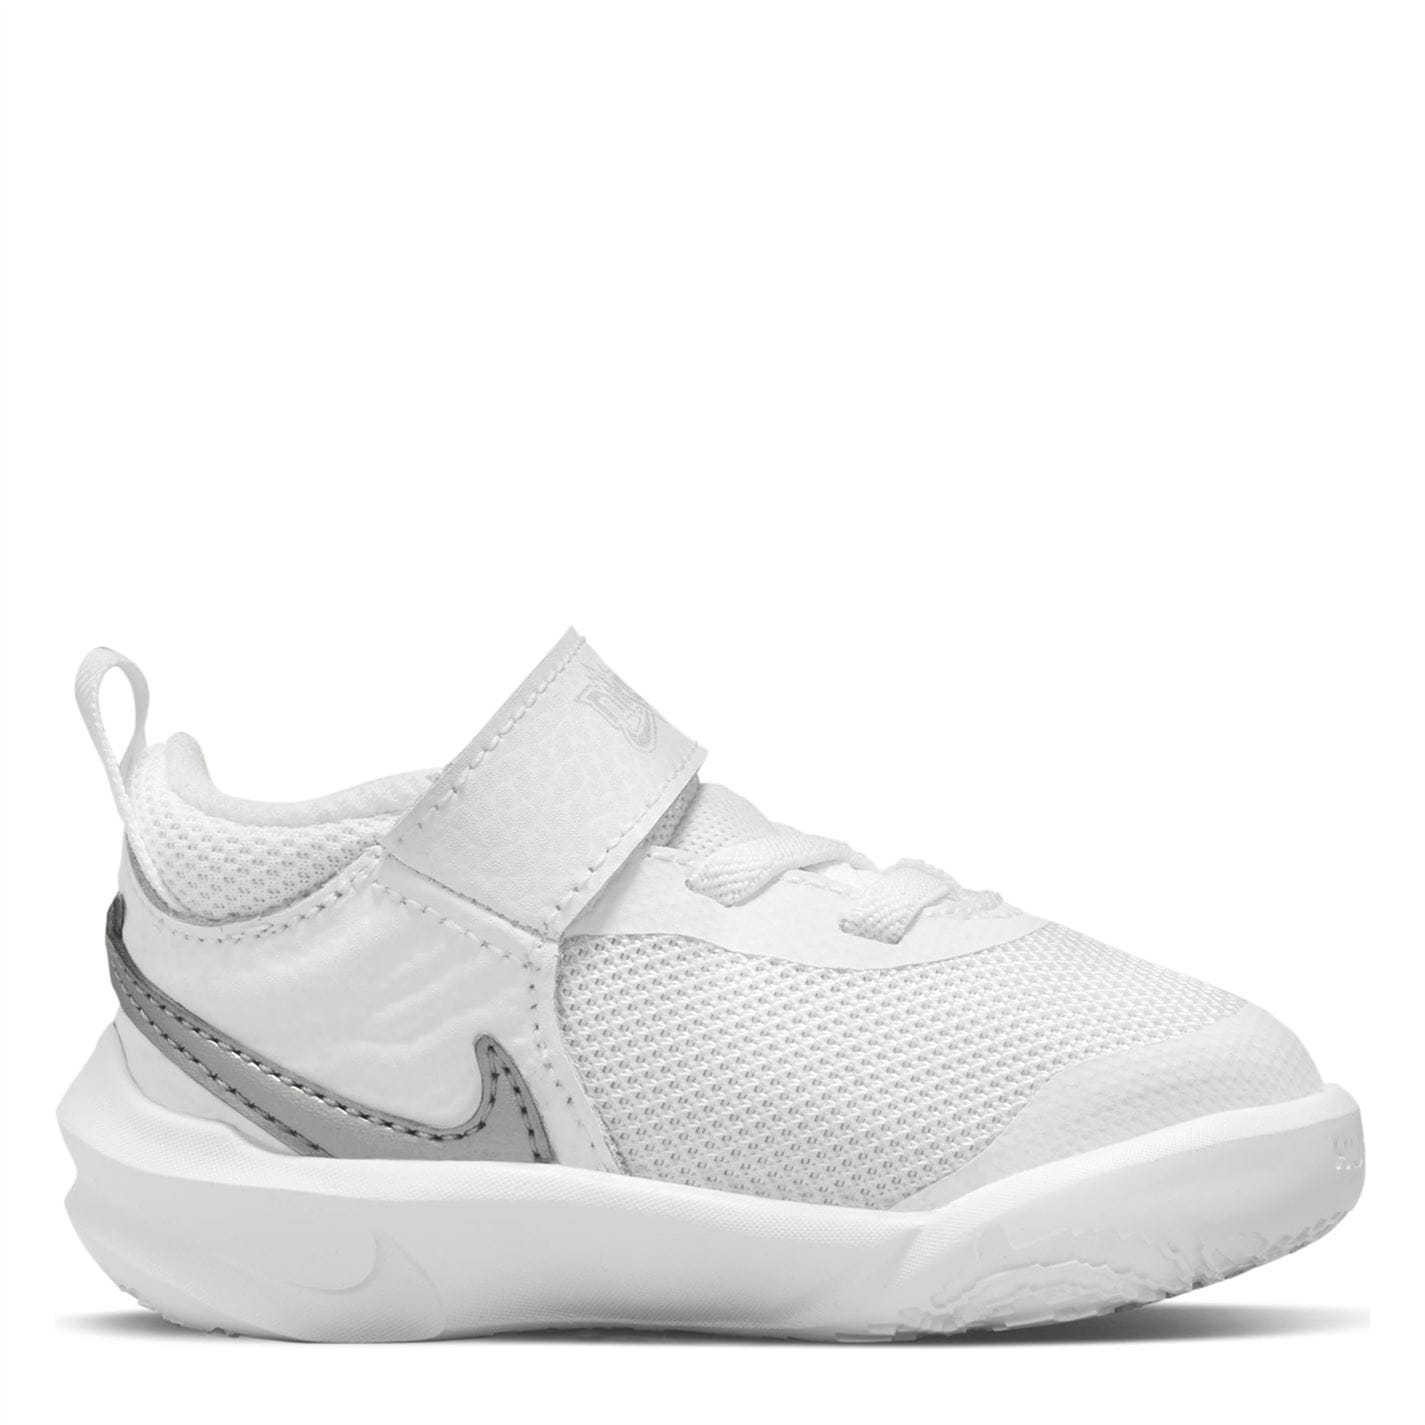 Nike Team Hustle D 10 Baby/Toddler Shoes White/Silver